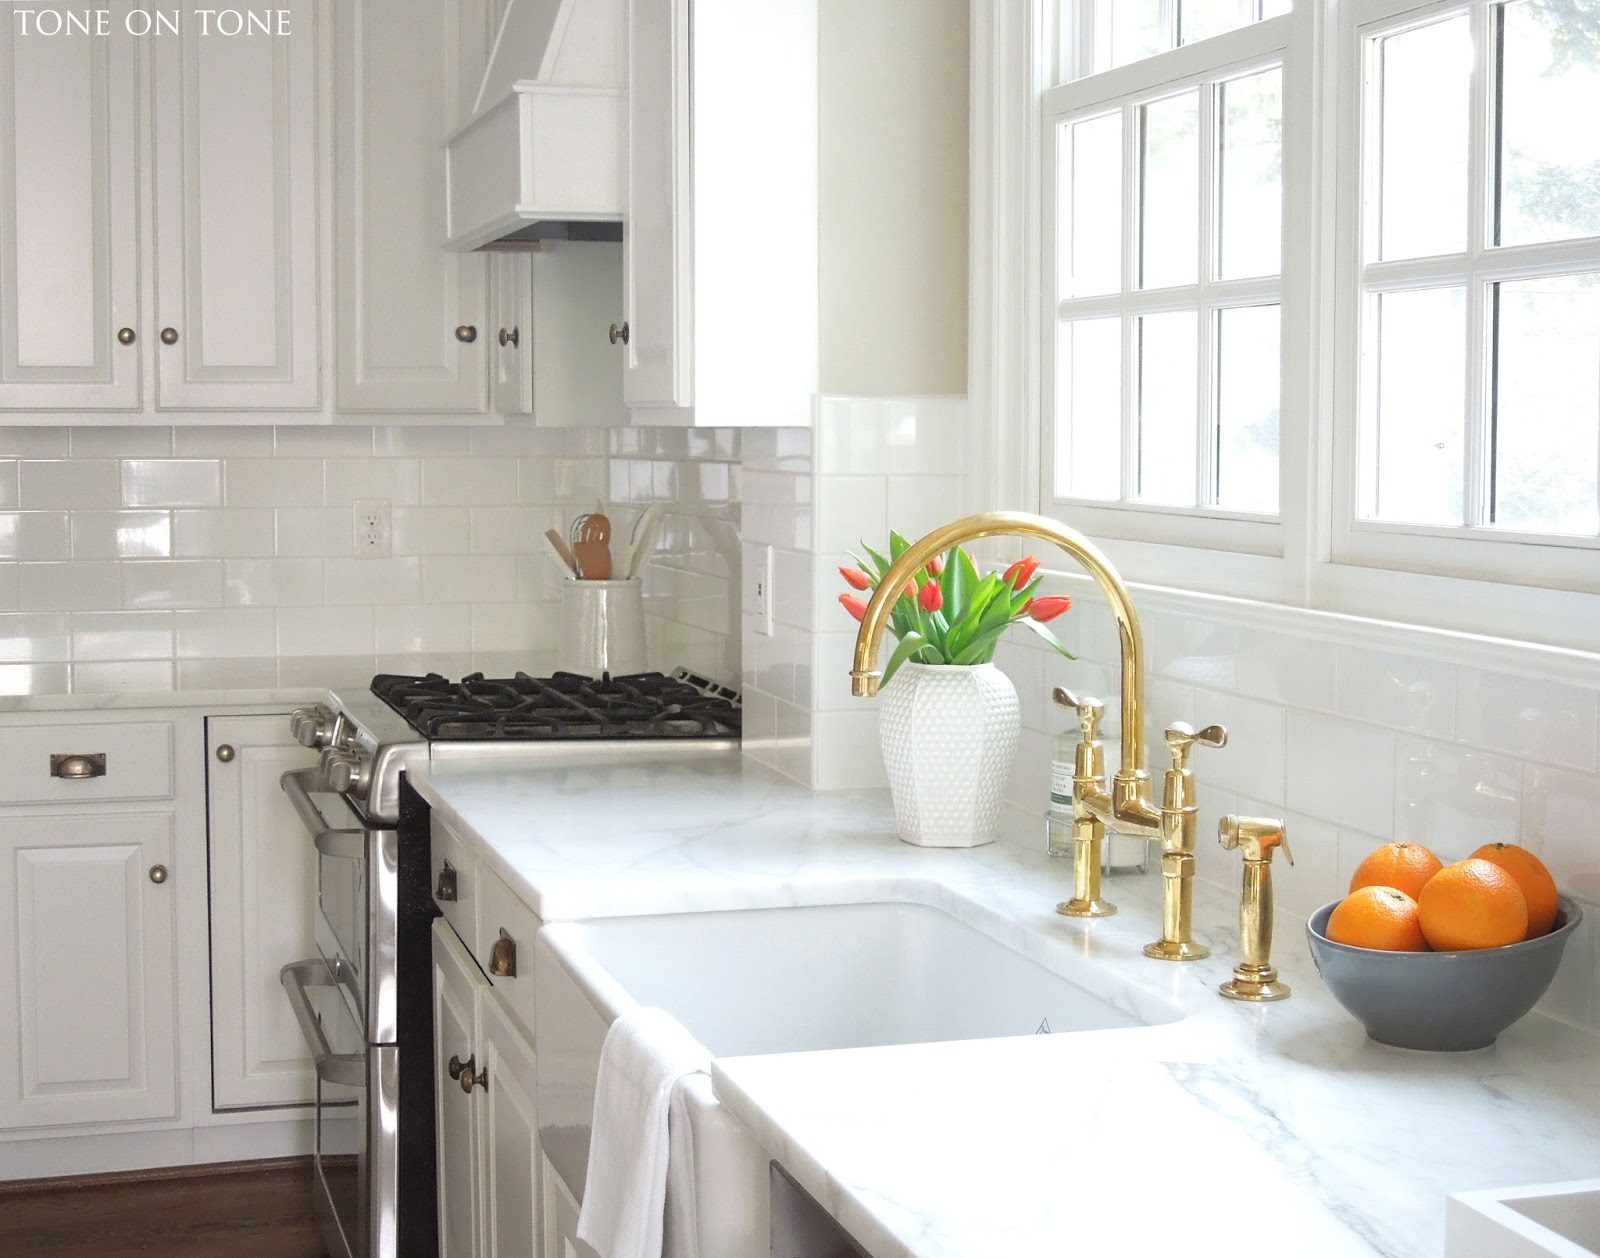 tone on tone a kitchen makeover